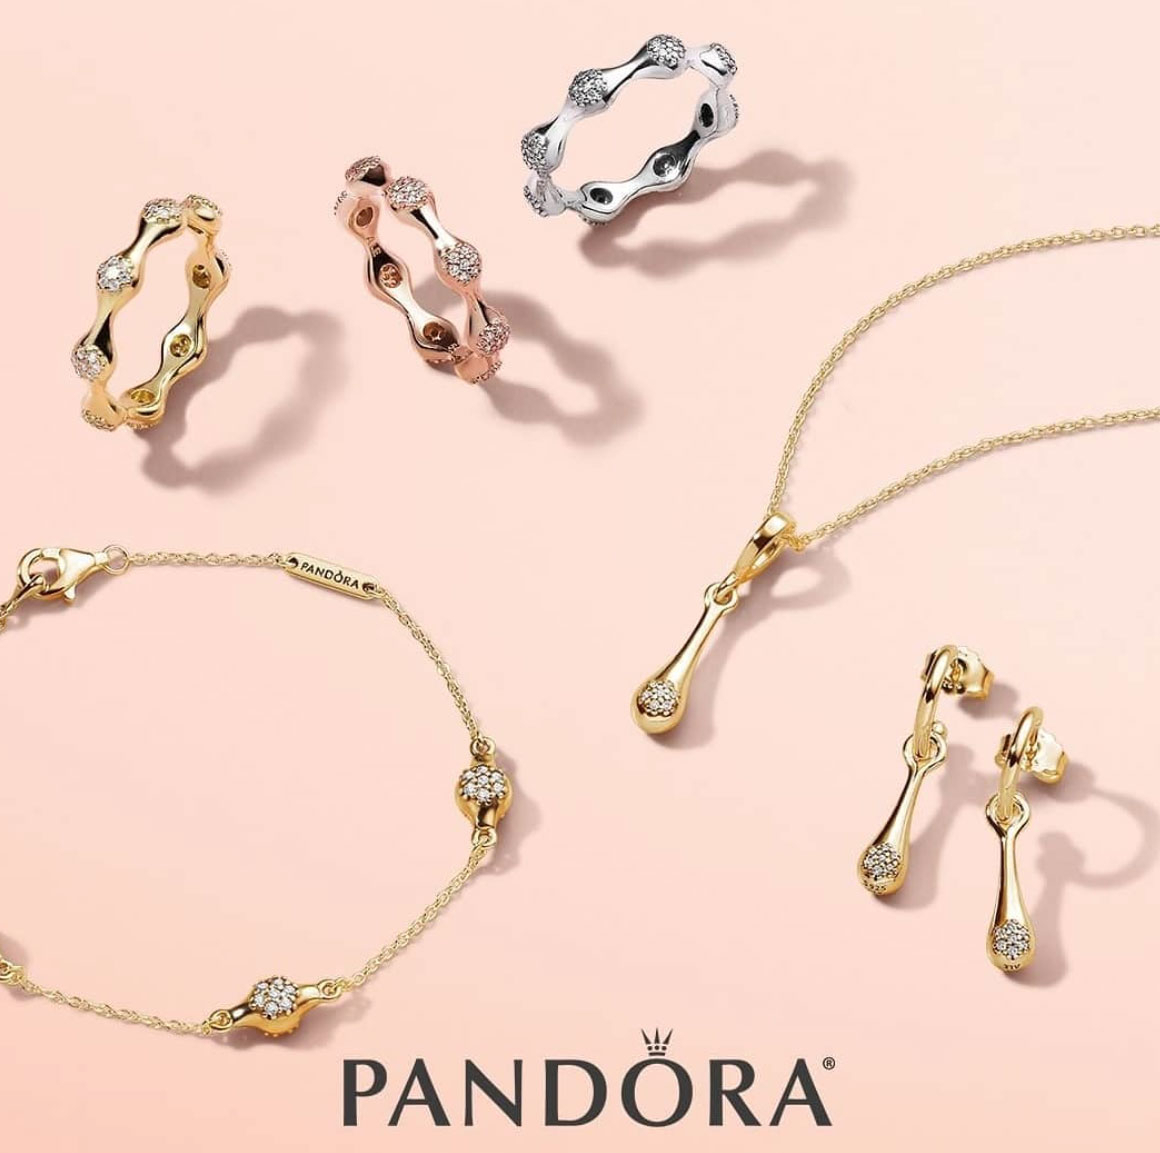 Pandora Pre Autumn 2018 Live Images – The Art Of Pandora | More Than Regarding Most Up To Date Pandora Moments Medium O Pendant Necklaces (View 25 of 25)